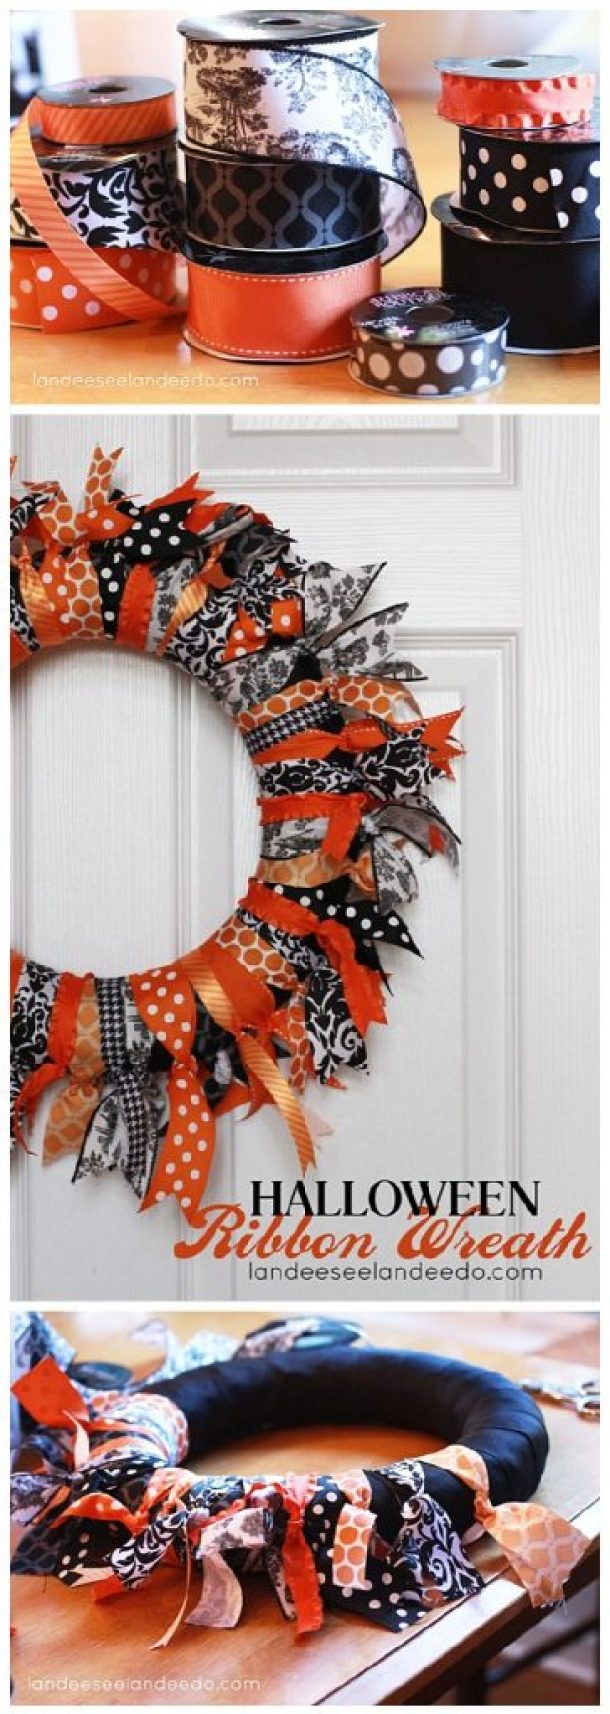 EASY and FUN DIY Halloween Ribbon Wreath Craft Project - Easy Step by Step Holiday Home Decoration Tutorial